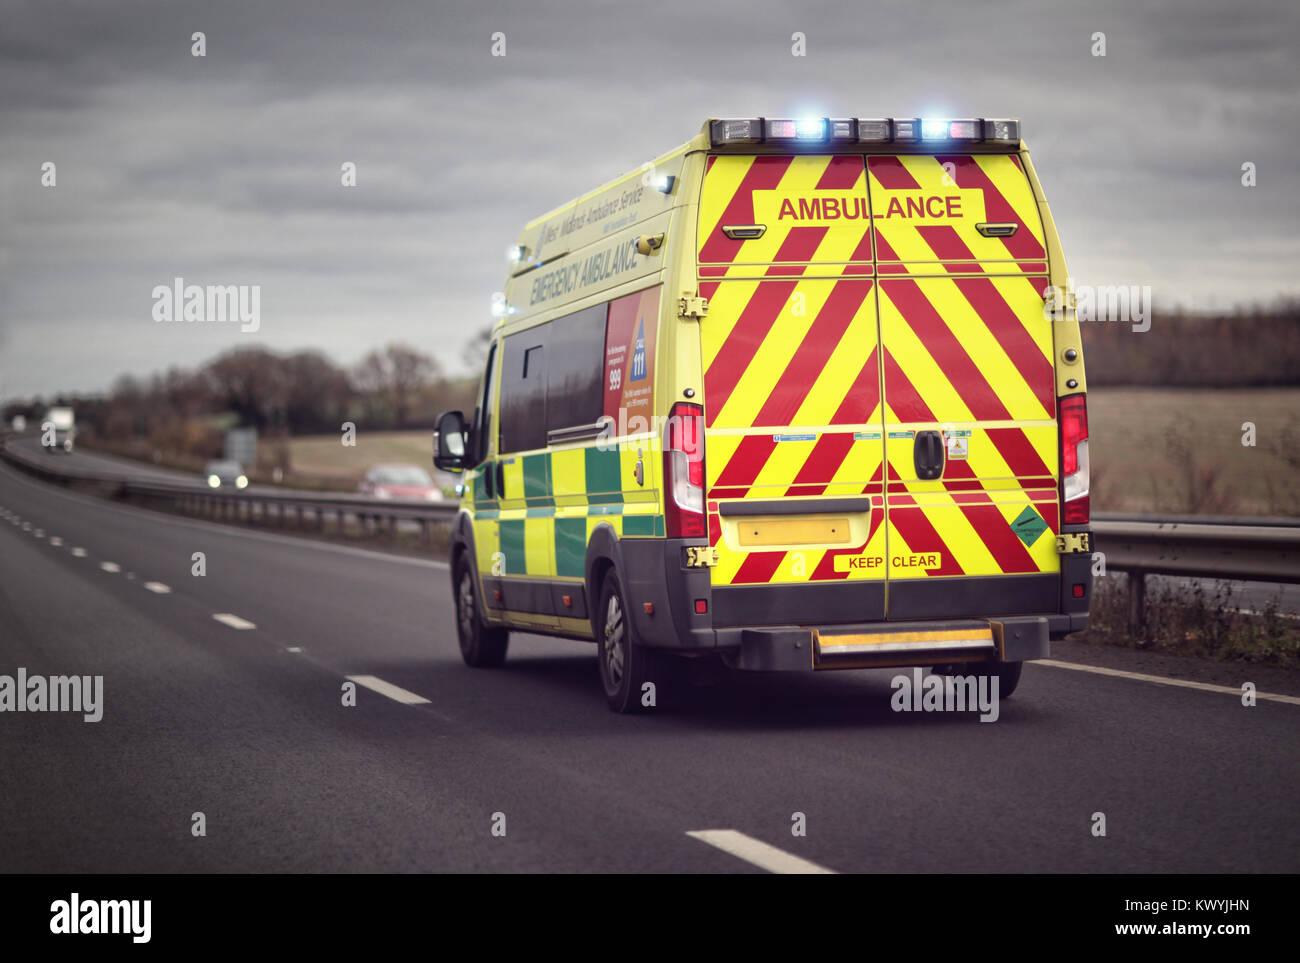 British ambulance responding to an emergency in hazardous bad weather driving conditions on a UK motorway - Stock Image